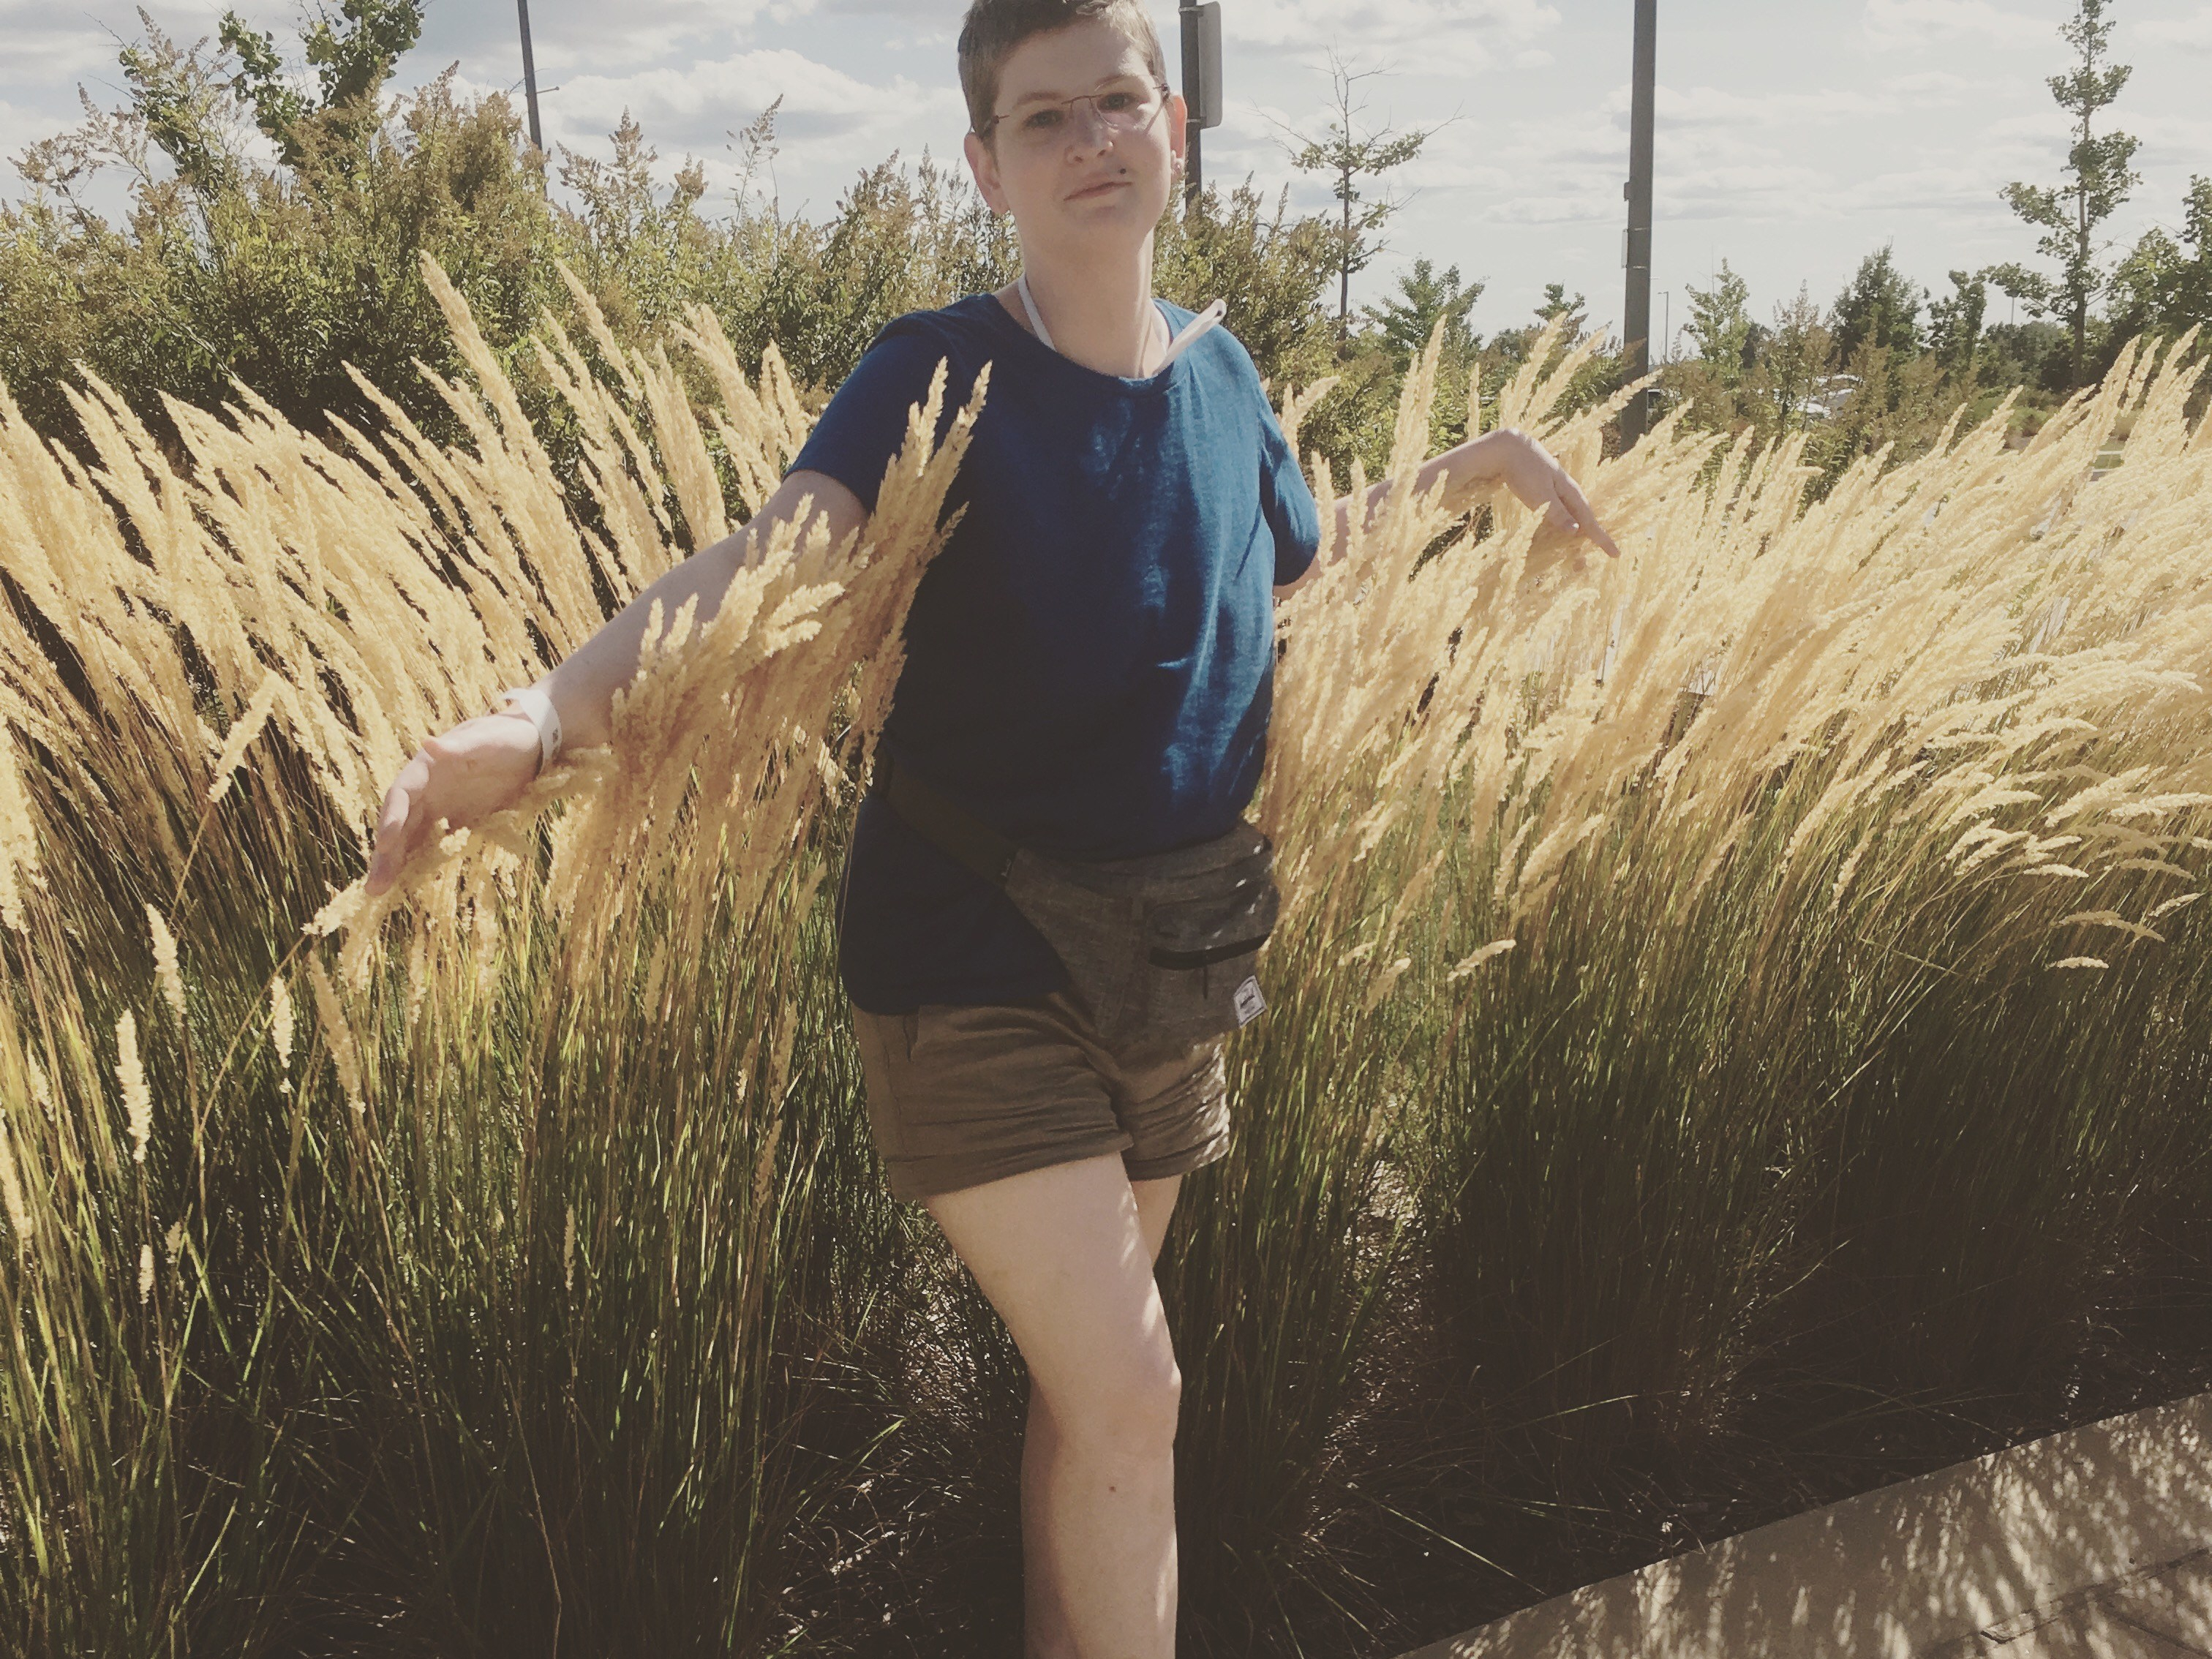 Image description: A blond white woman wearing a blue, shirt,beige shorts and a fanny pack, walks out of some tall grass arms outstretched